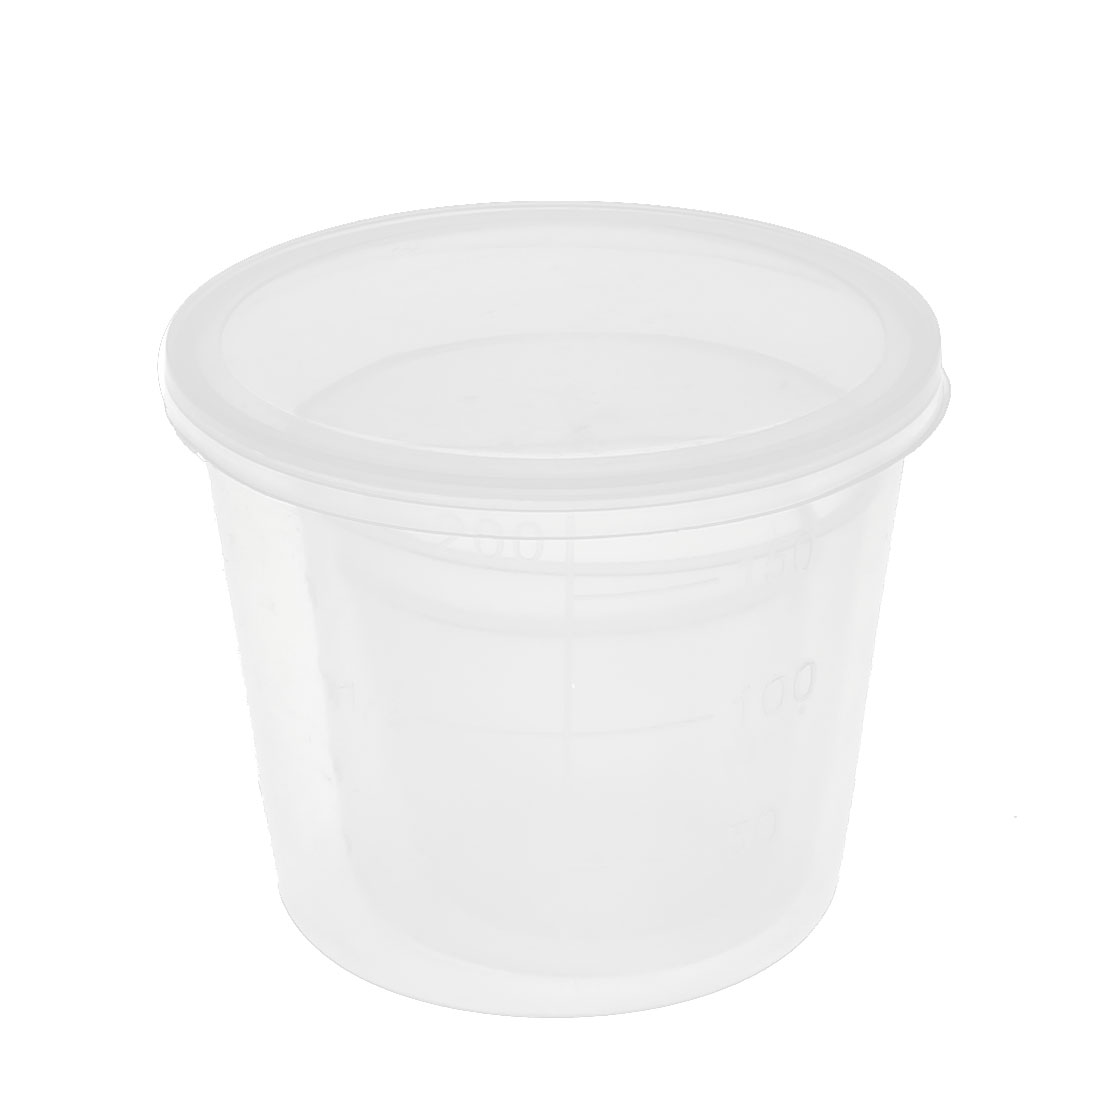 3 in 1 Clear White Plastic Fishing Measuring Measure Cups 40ml 90ml 150ml